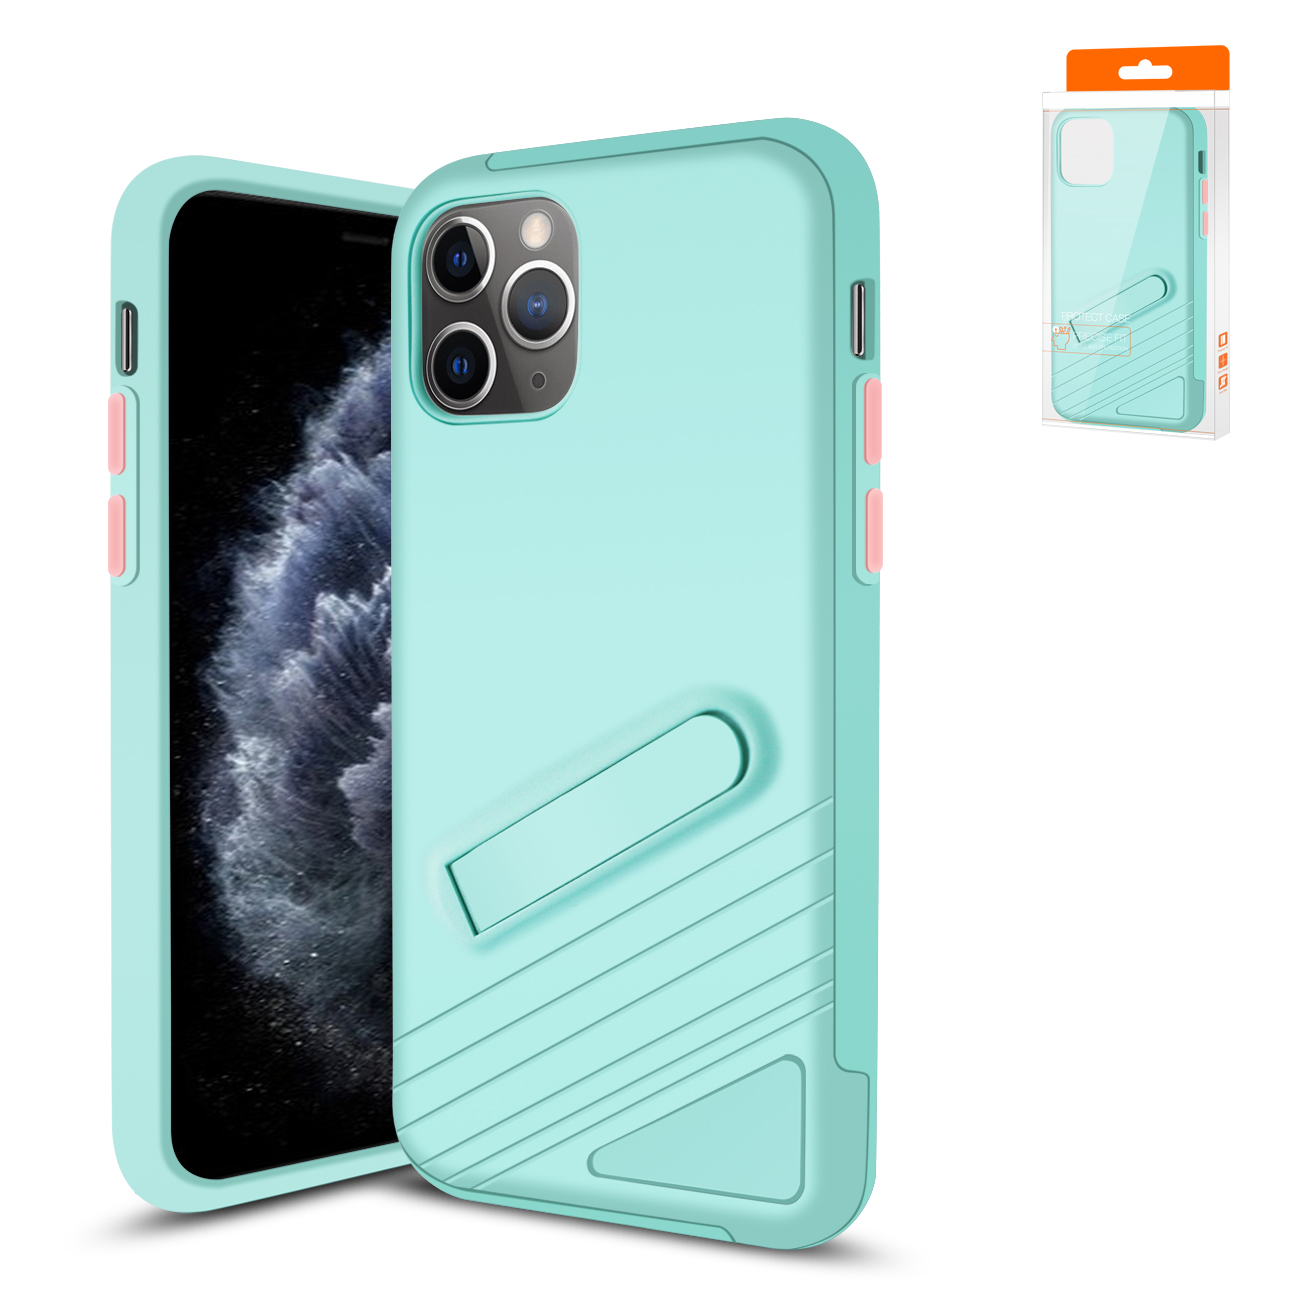 Apple iPhone 11 Pro Max Armor Cases In Blue